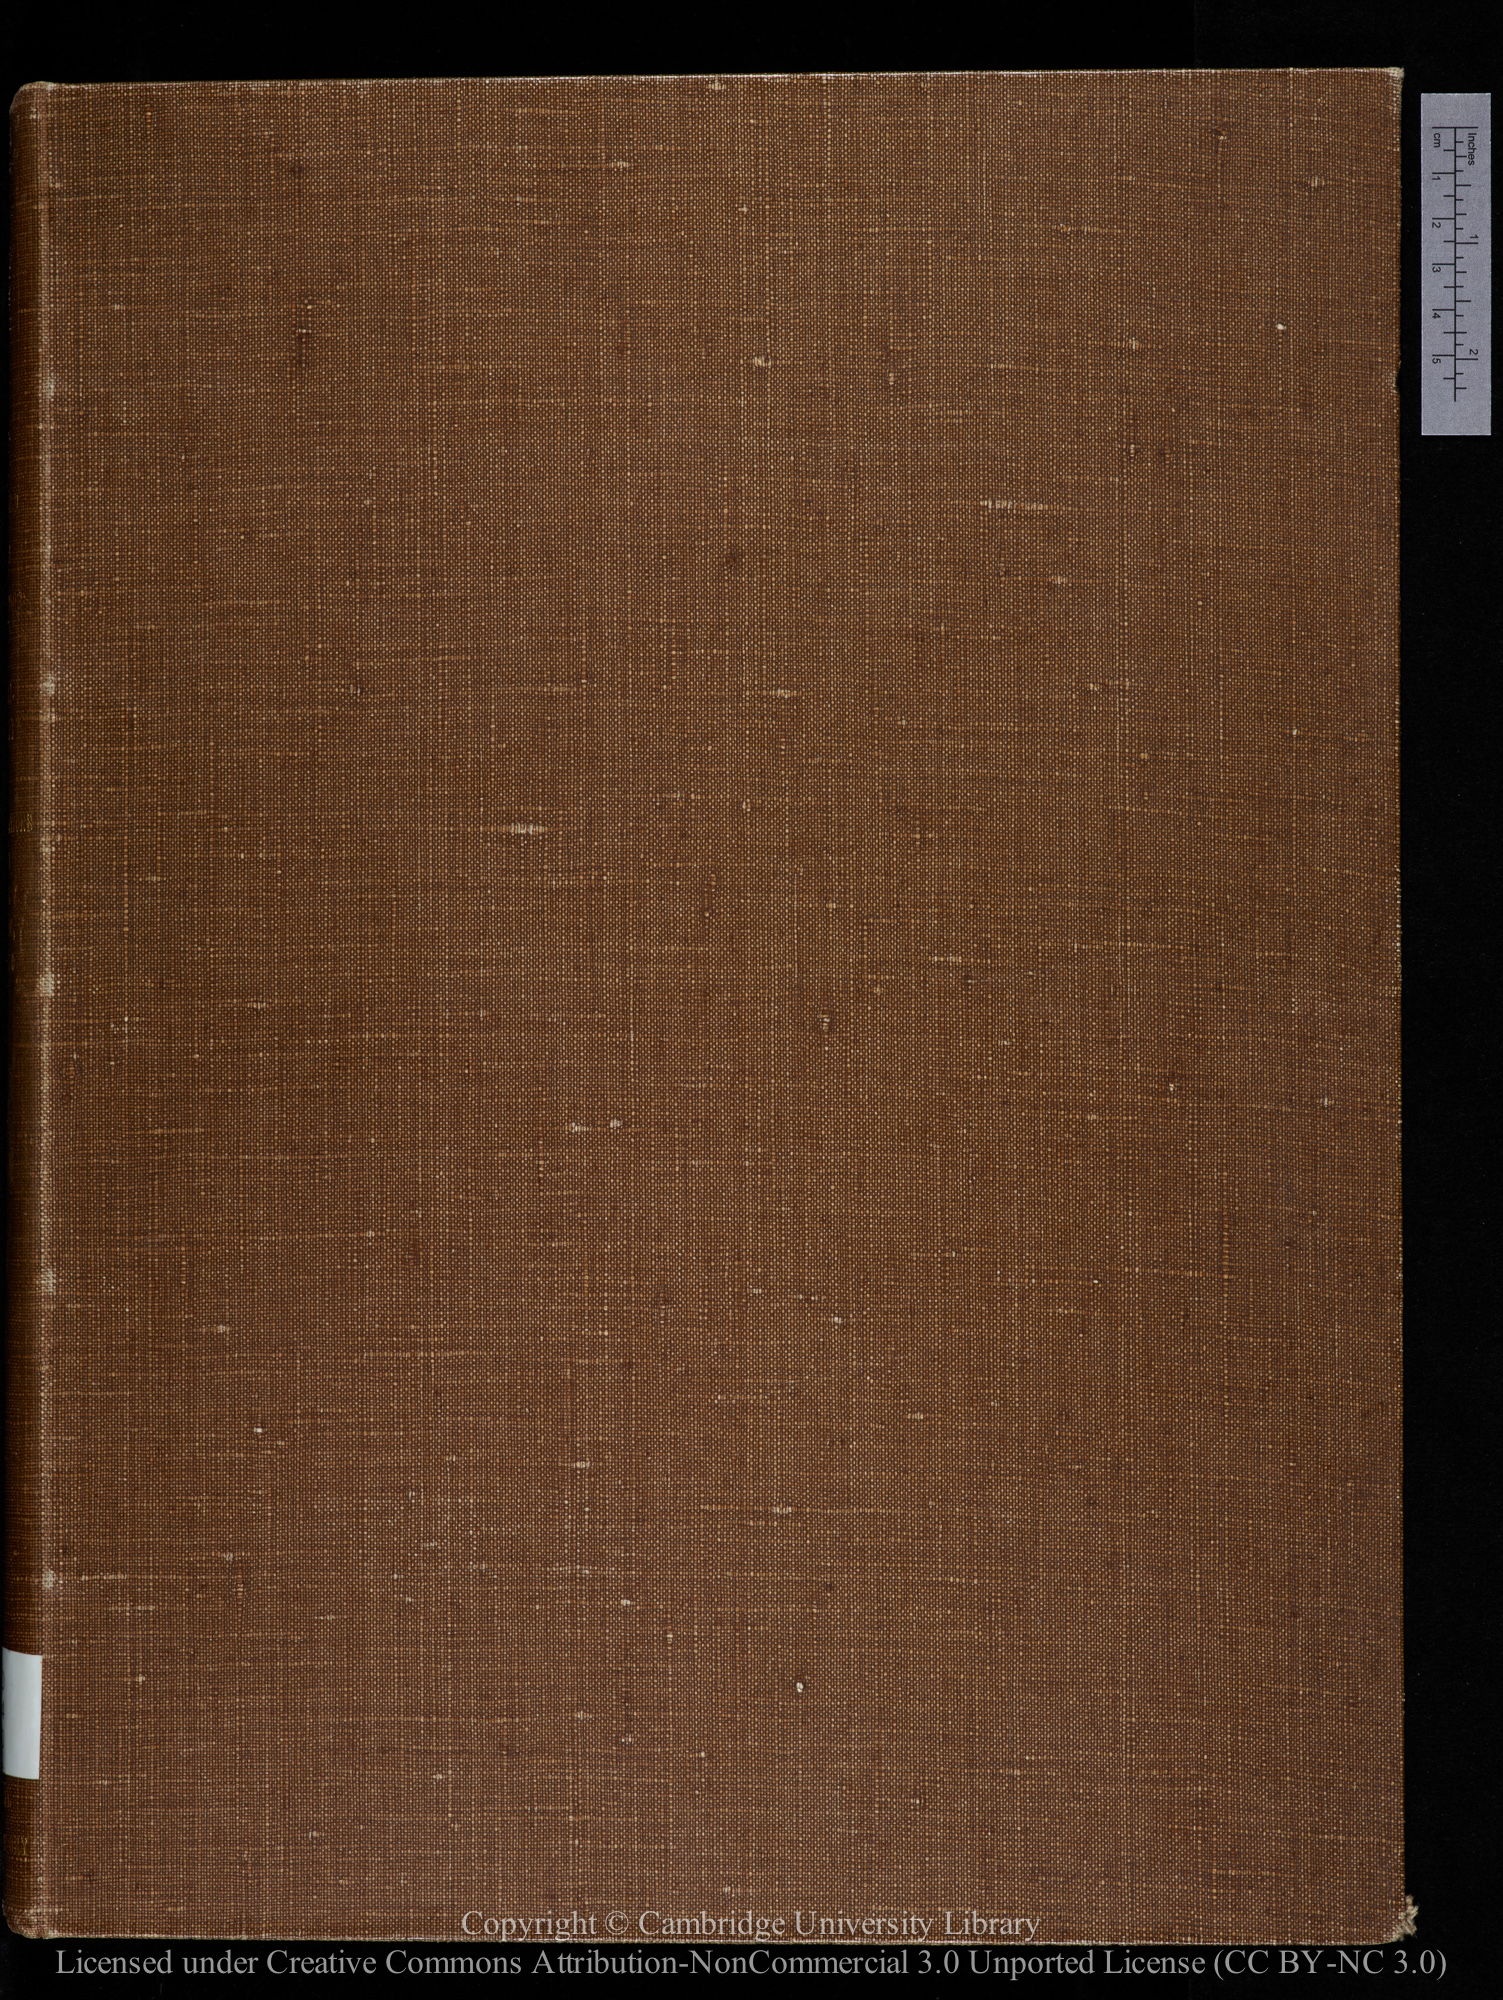 Captain Cook's journal of voyage to the South Seas